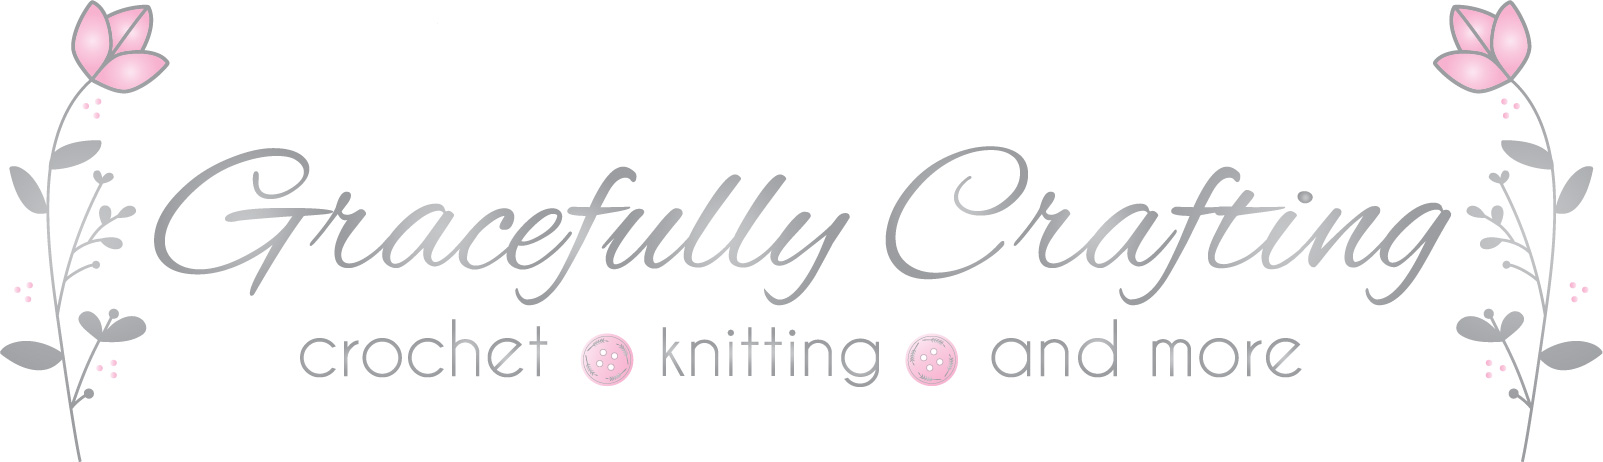 :: Gracefully Crafting :: - My WordPress Blog